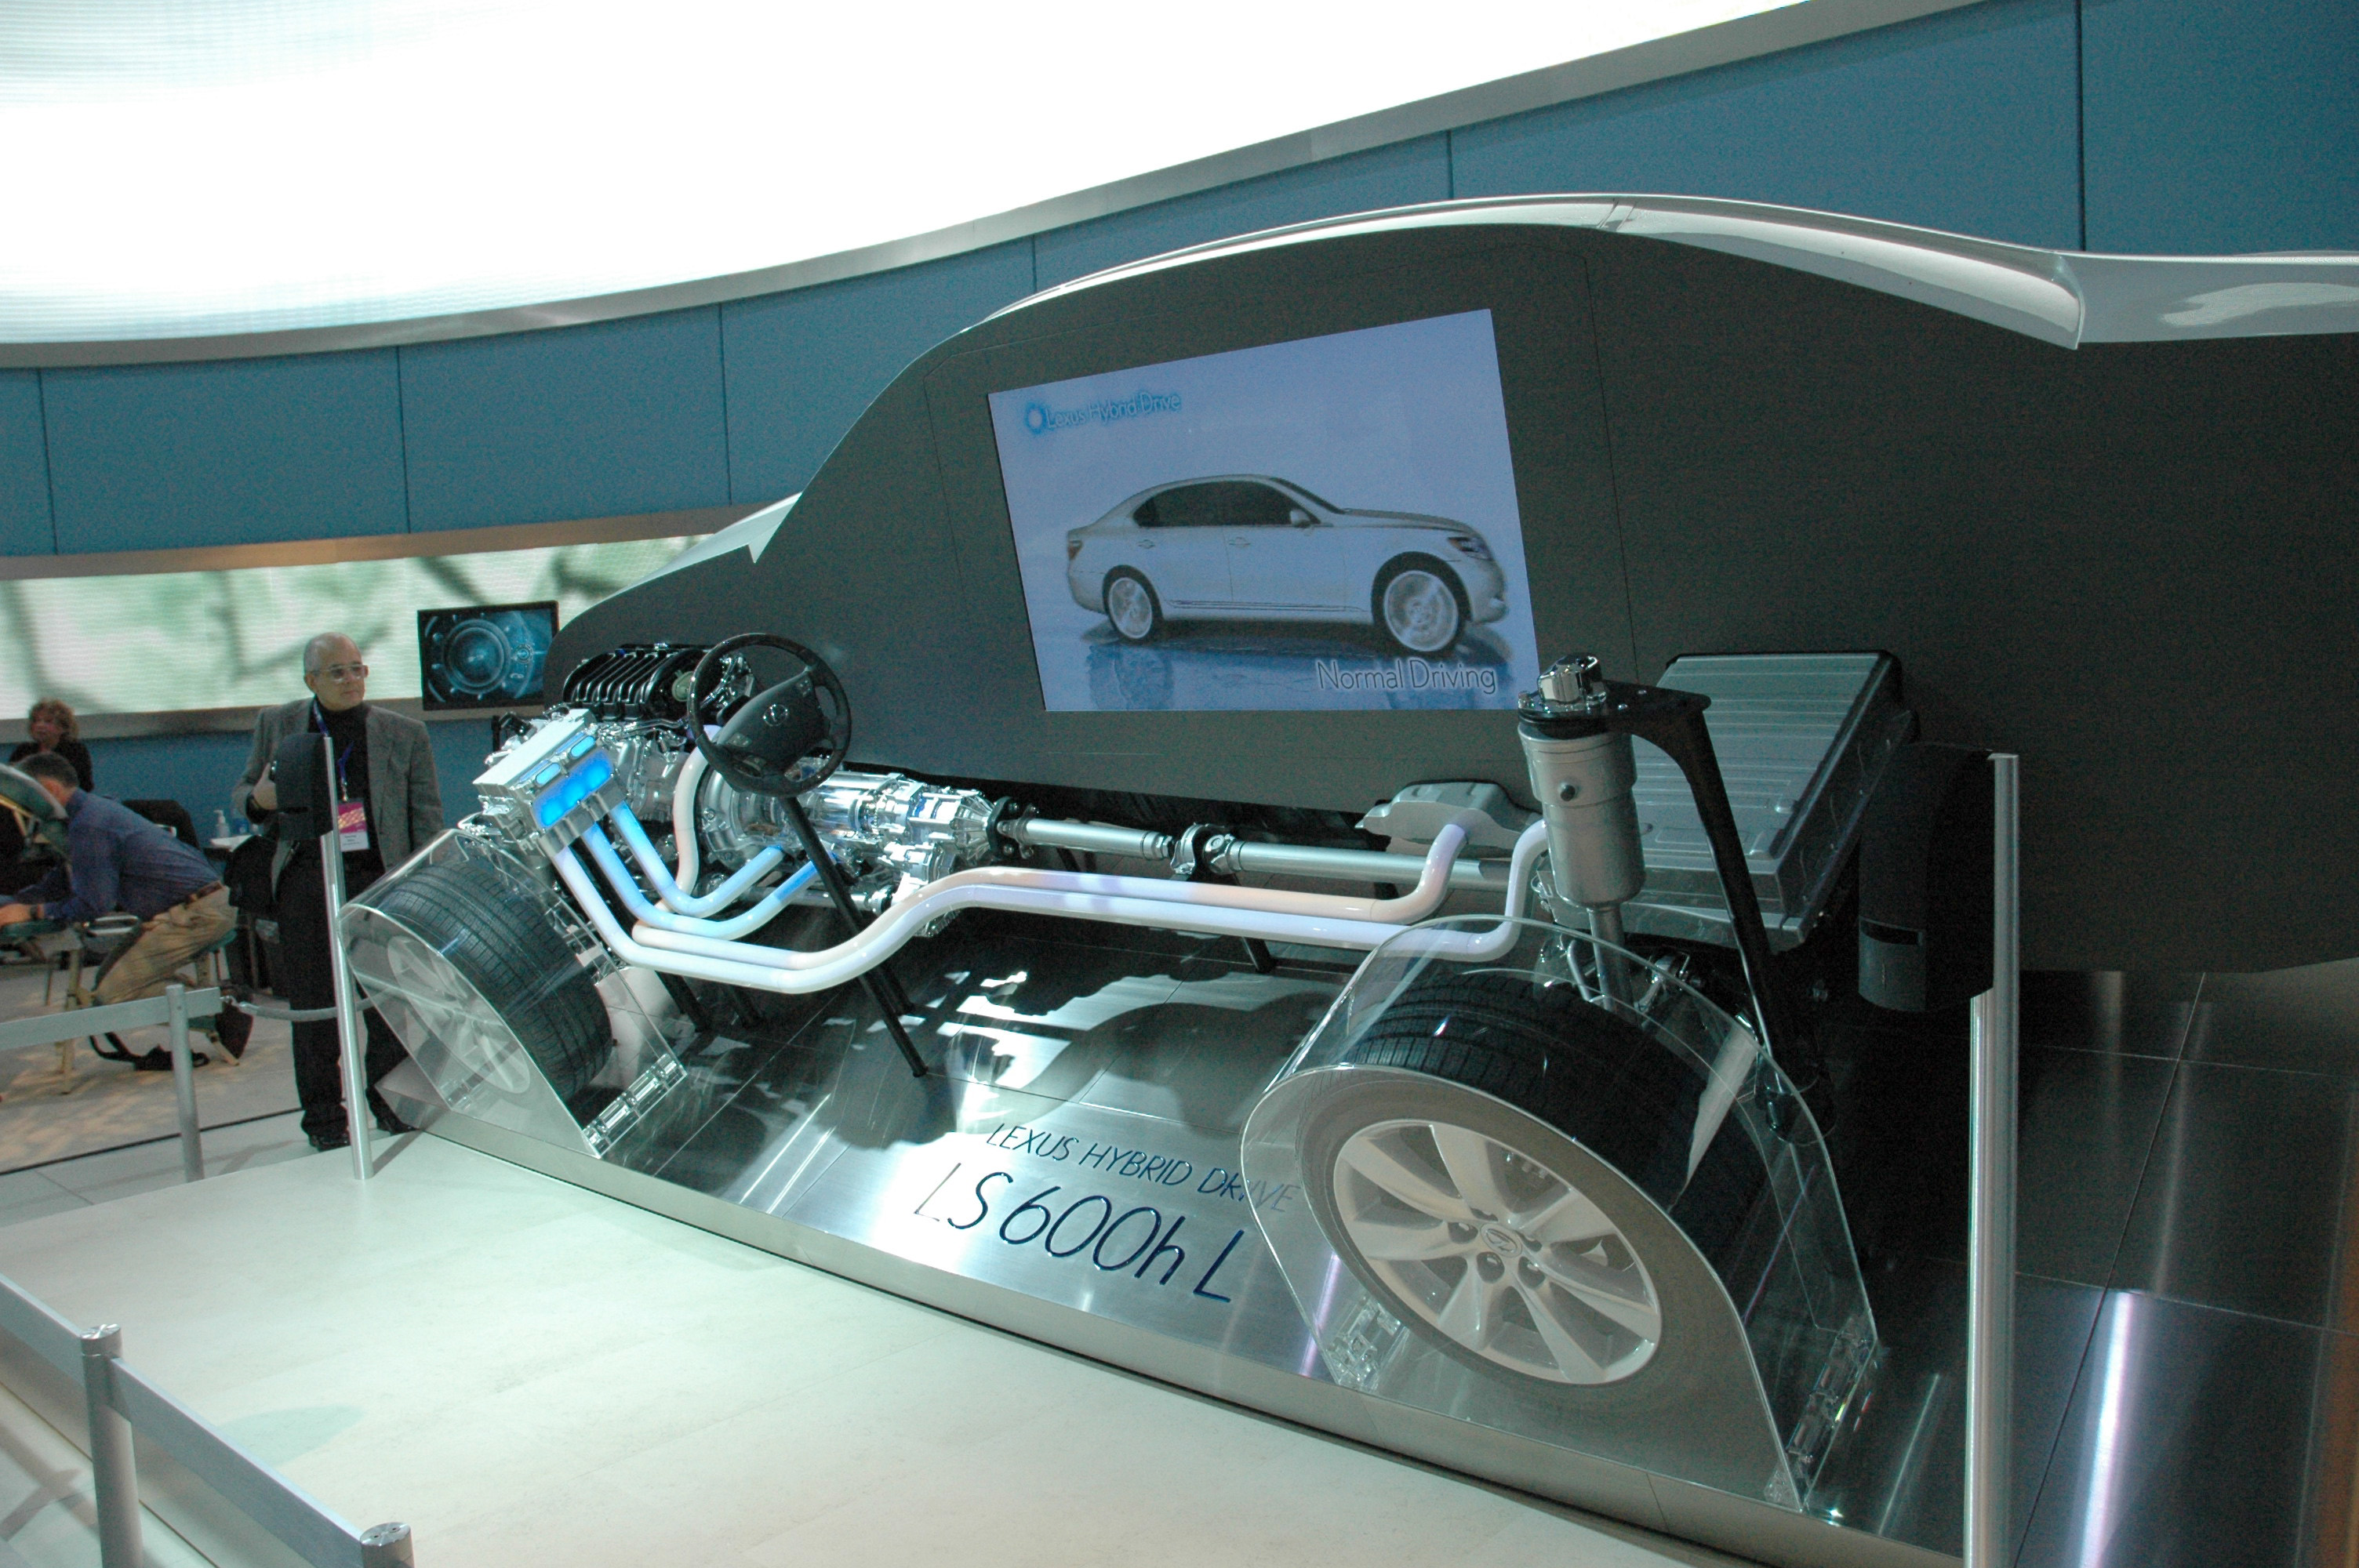 alt=Cutaway hybrid car showing electrical connections; auto show display backdrop.